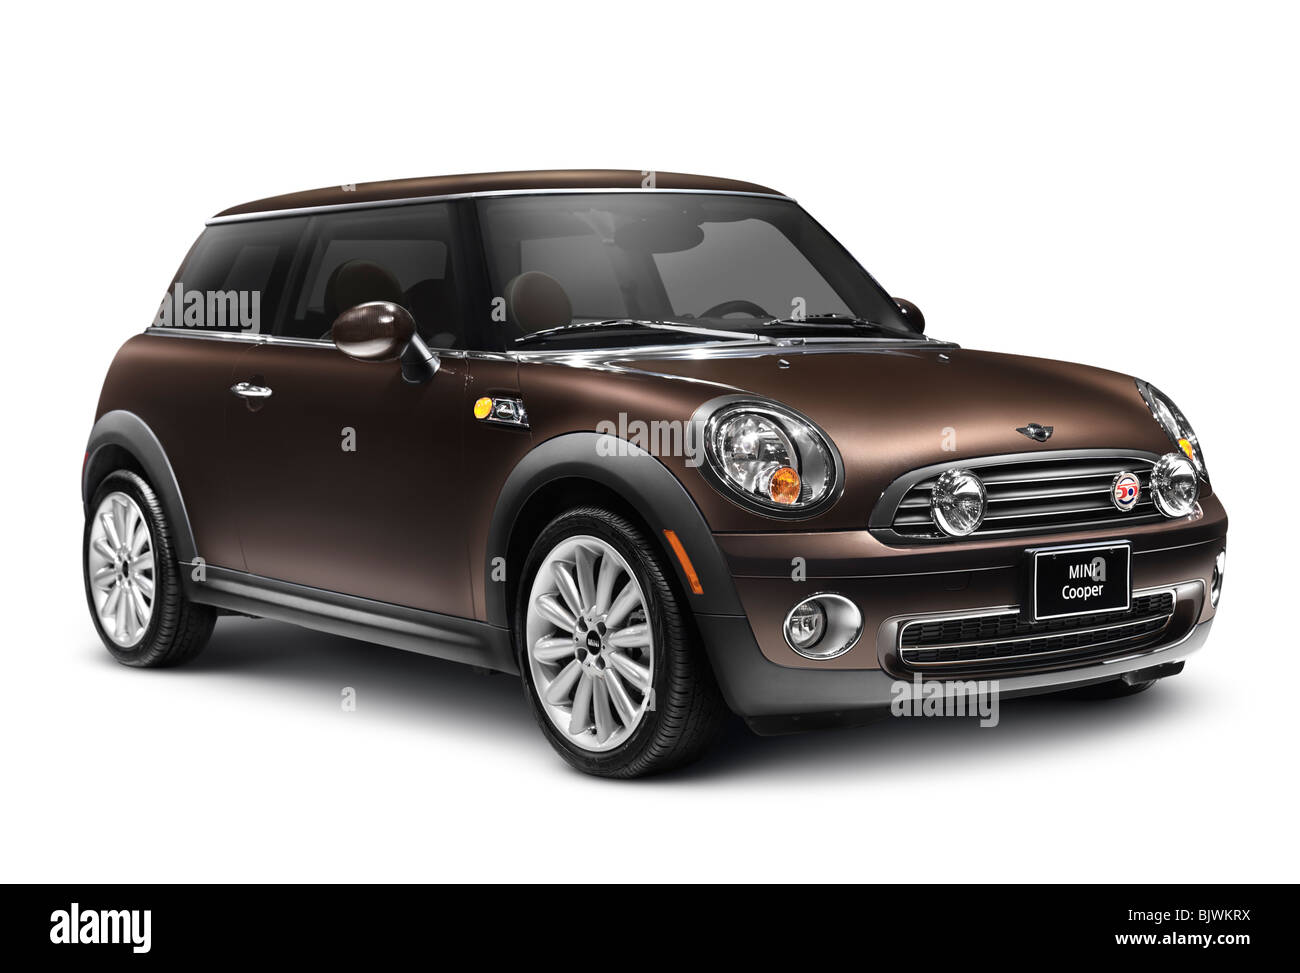 2010 Mini Cooper 50 Mayfair car isolated with clipping path on white background - Stock Image